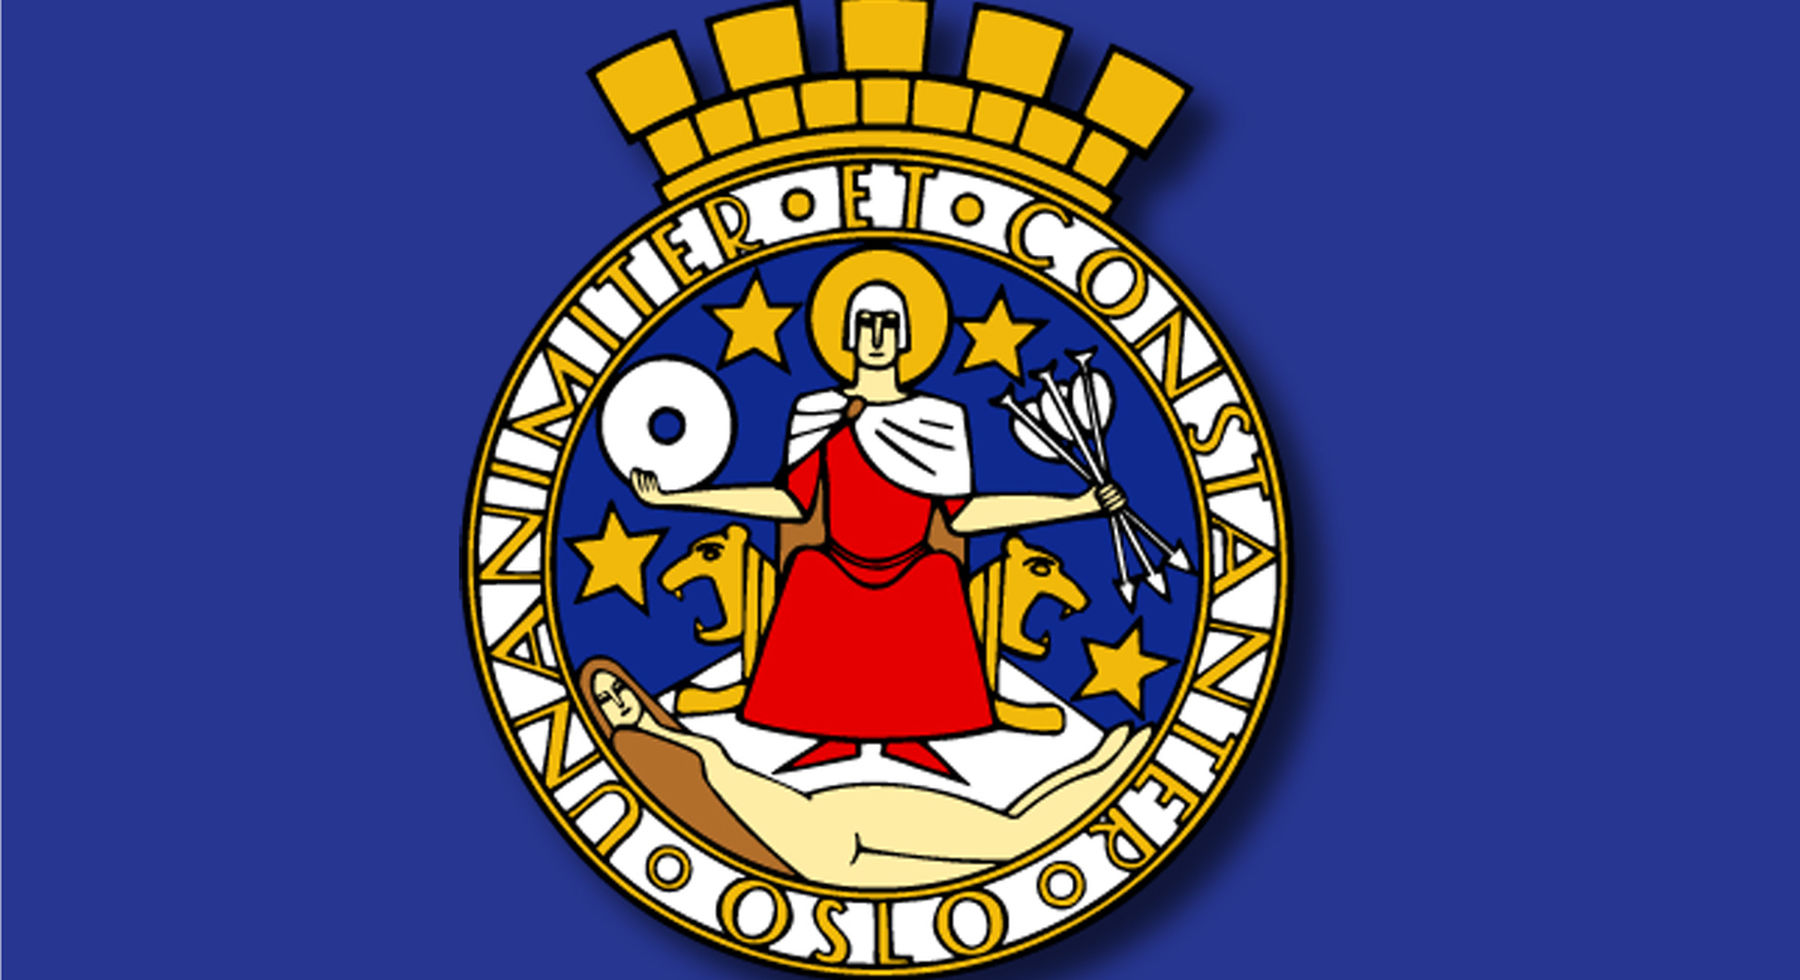 Oslo´s coat-of-arms.